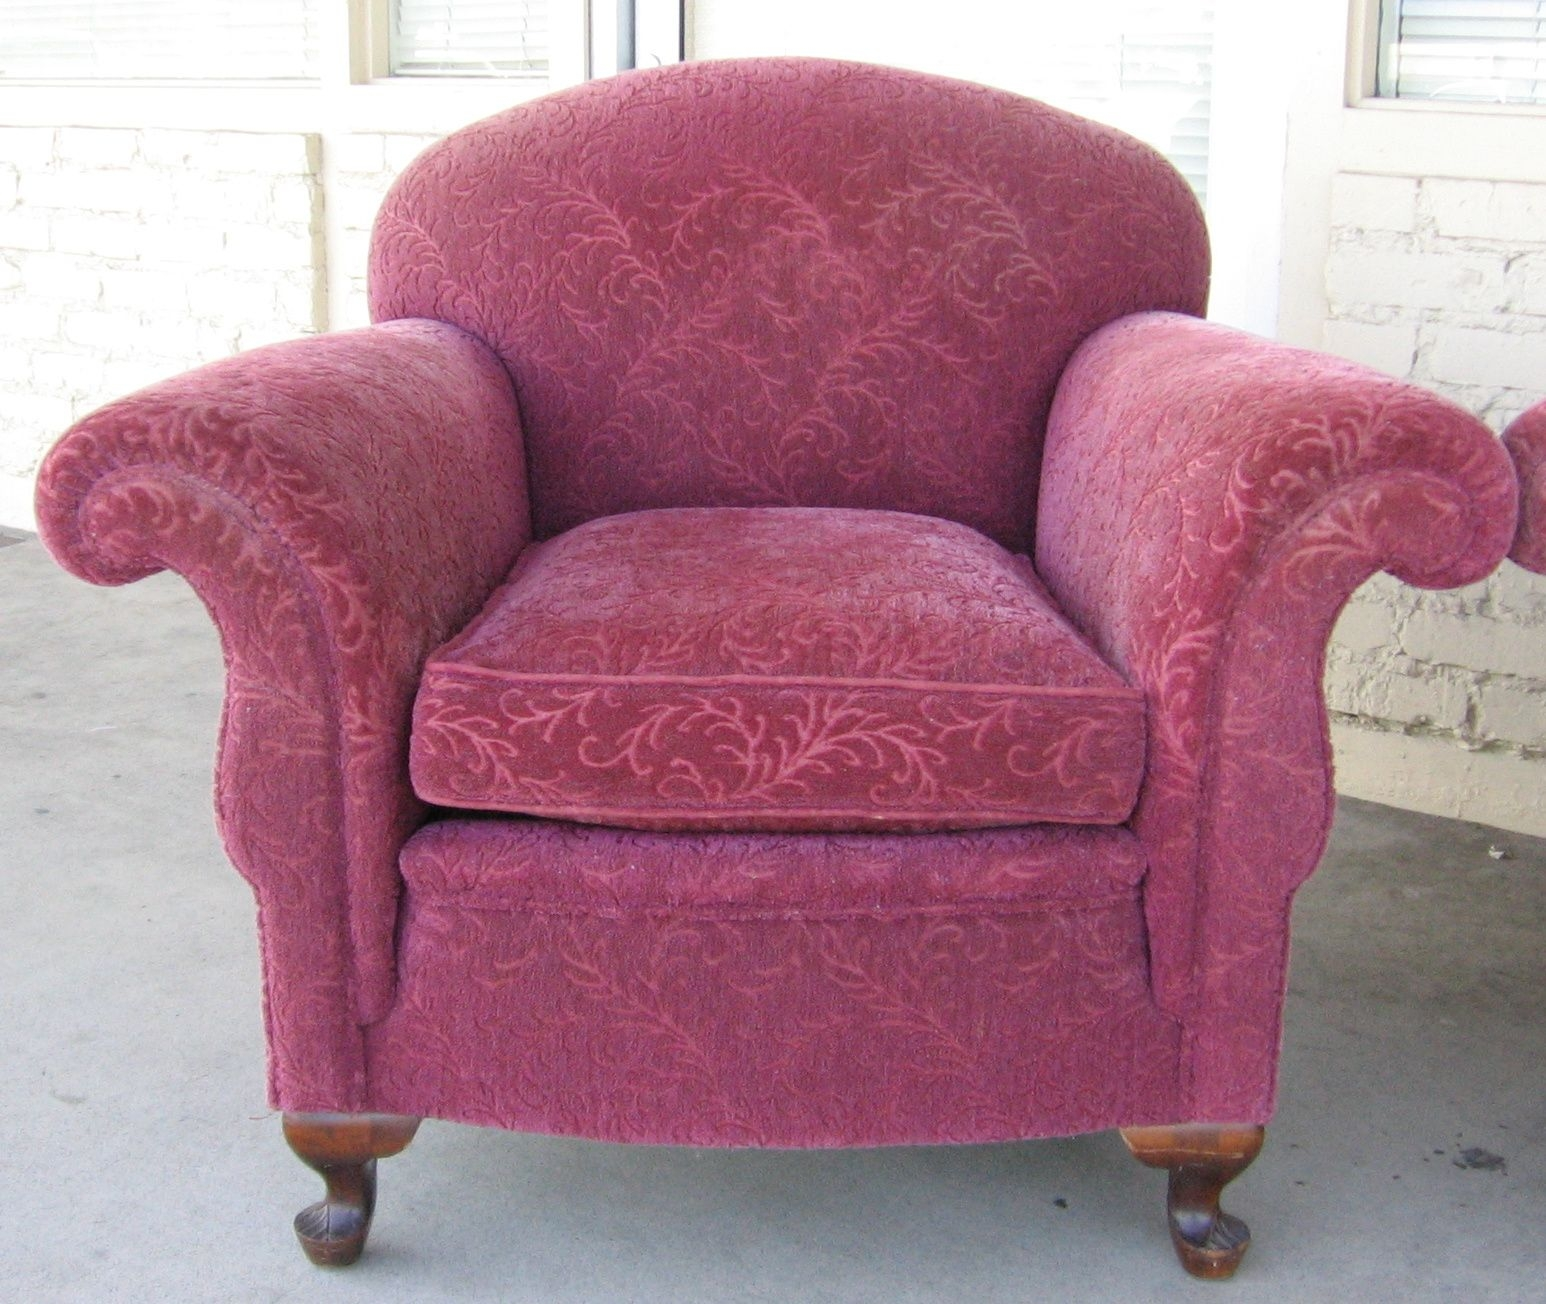 1930s Upholstered Furniture Images Google Search 1930s Throughout Overstuffed Sofas And Chairs (Image 1 of 15)